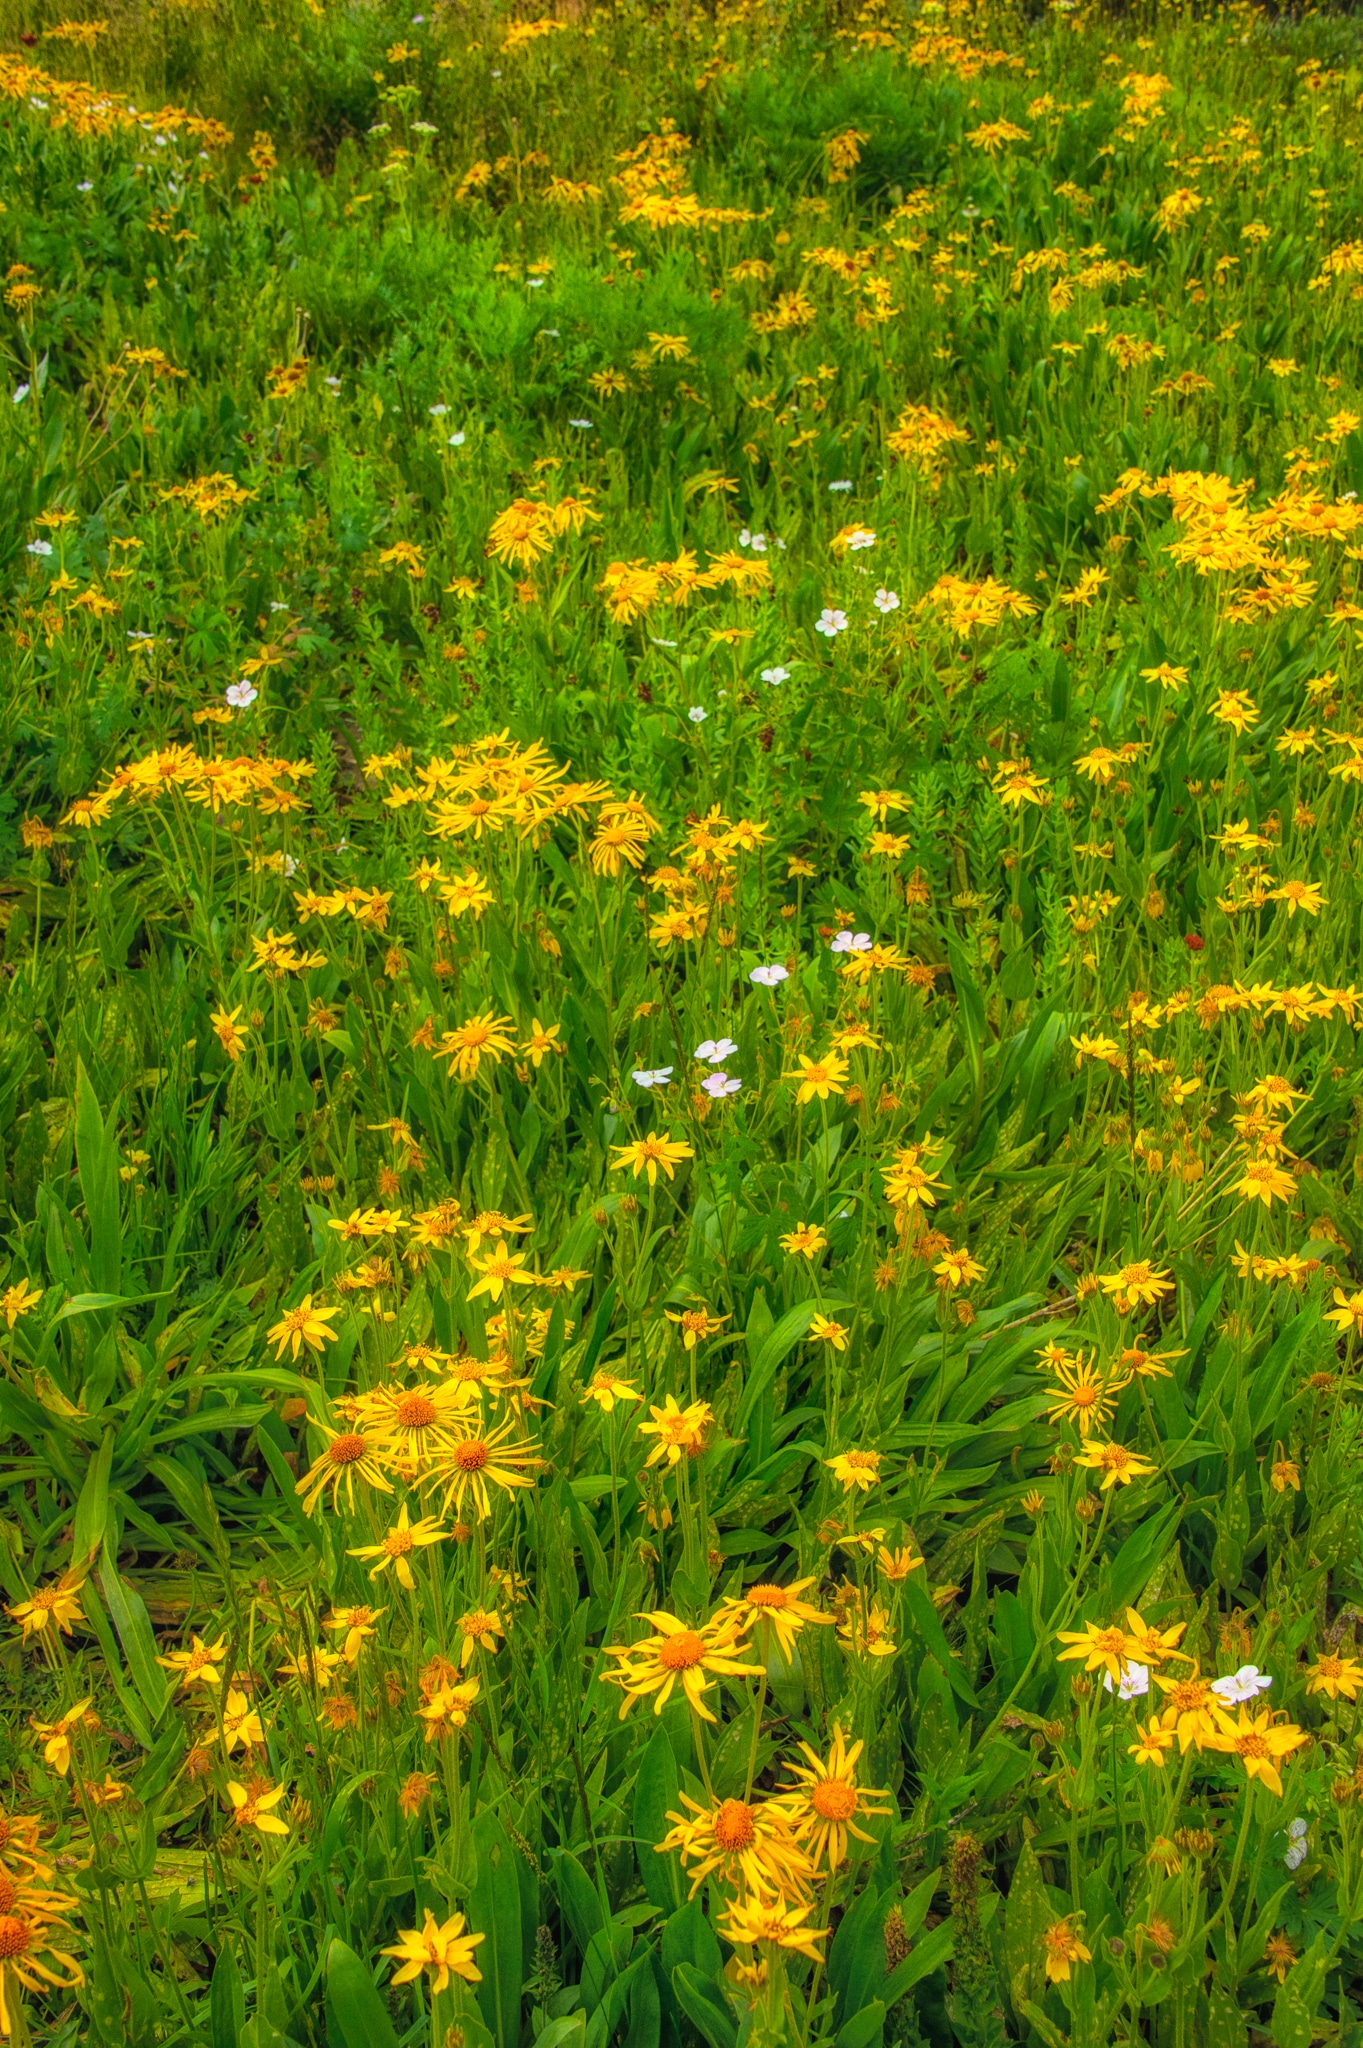 Orange Sneezeweed and other species of wildflowers carpet US Basin on FS 825 in the Red Mountain Mining District of Colorado.